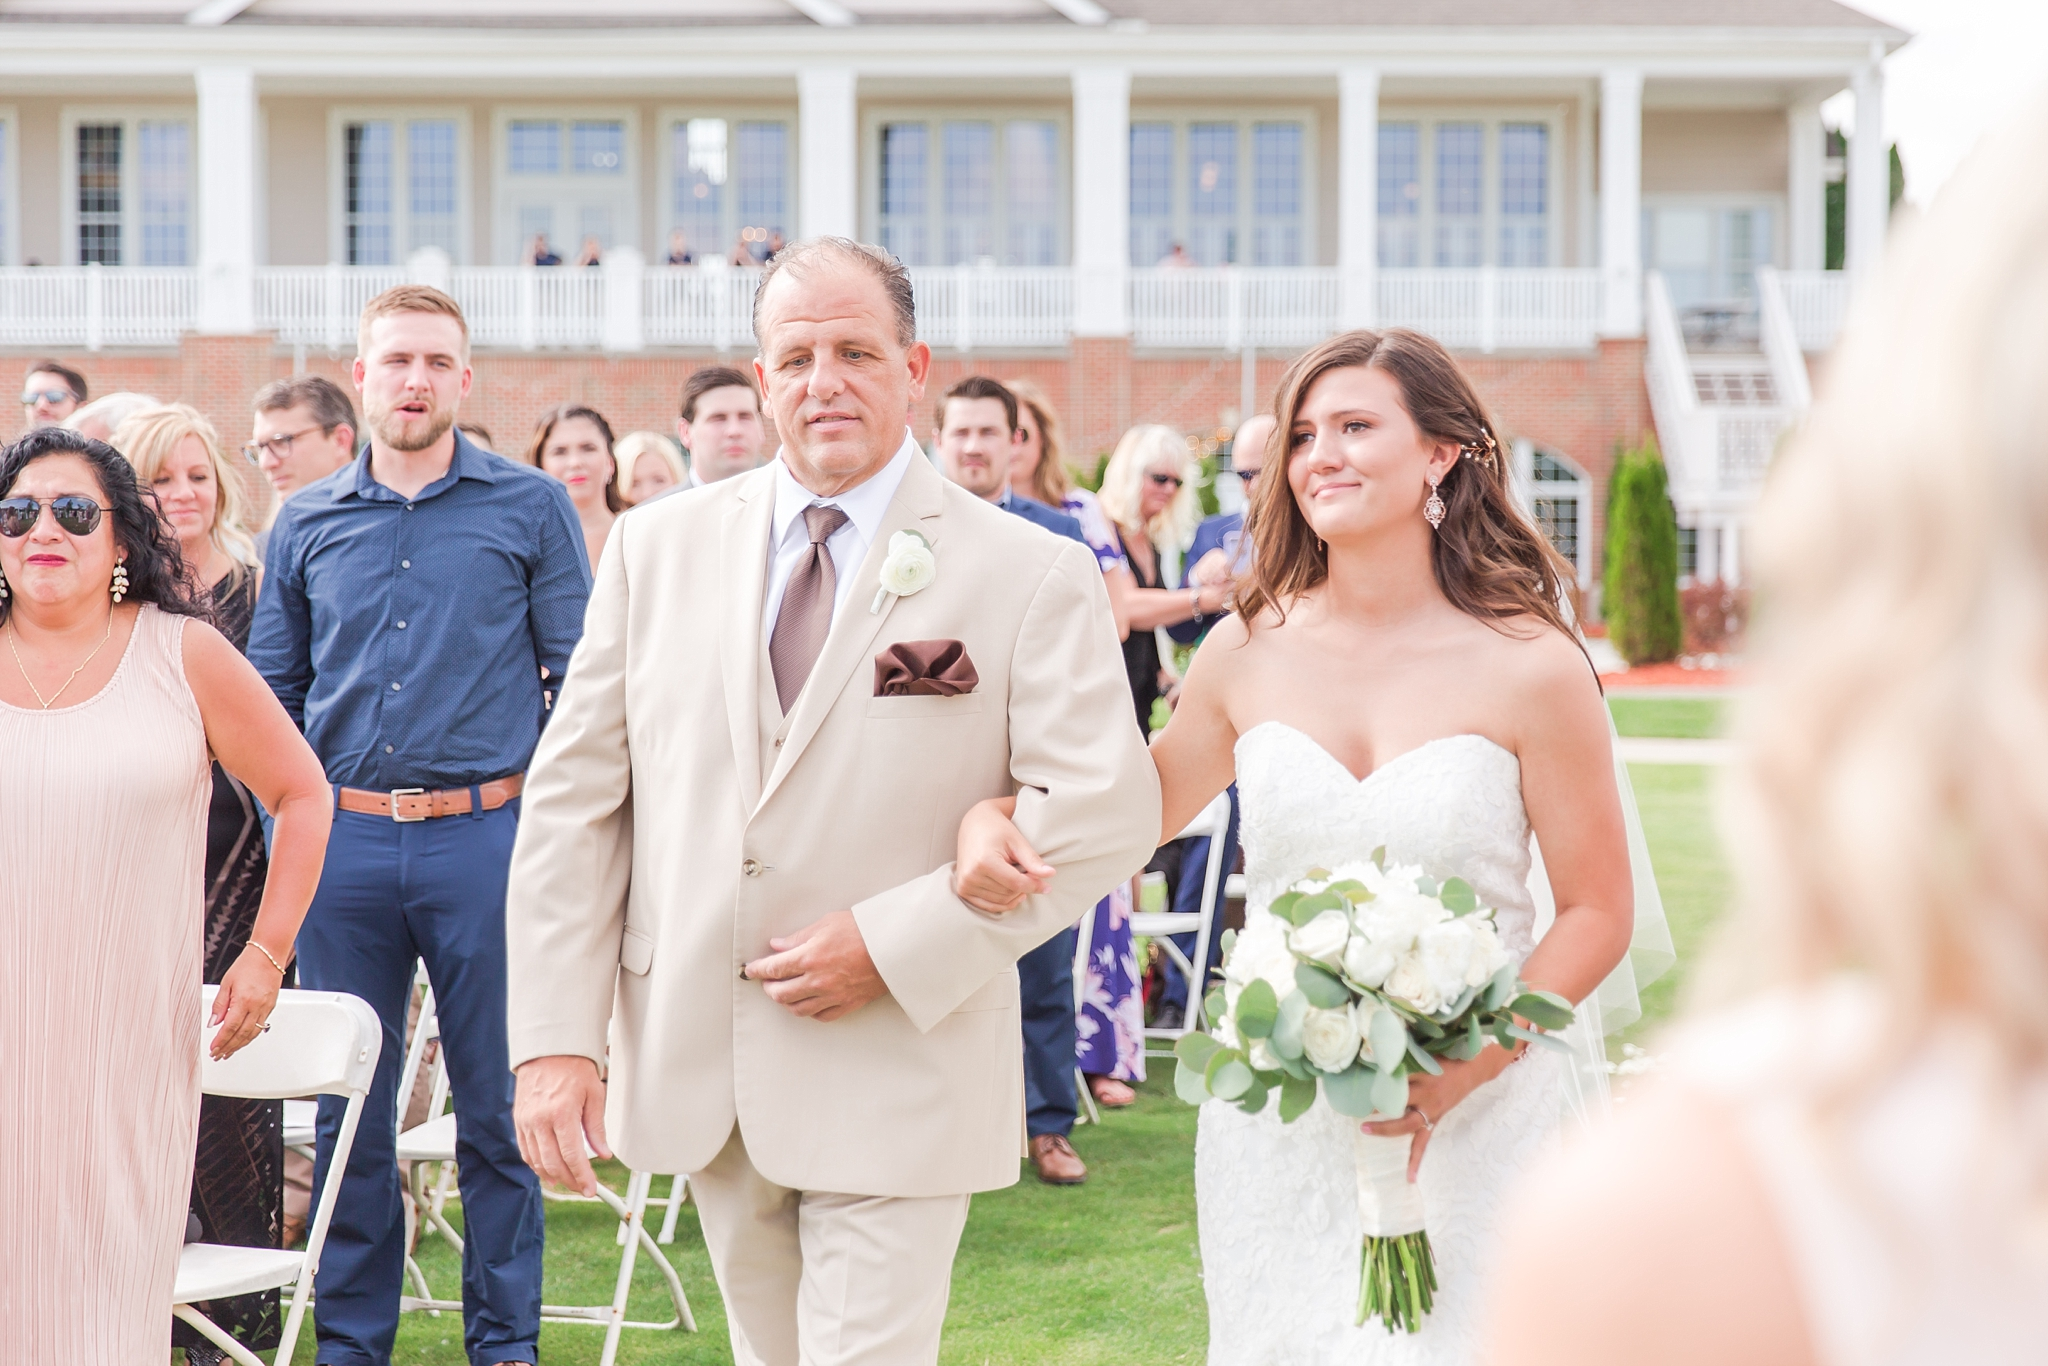 candid-timeless-wedding-photos-at-the-captains-club-in-grand-blanc-michigan-by-courtney-carolyn-photography_0036.jpg